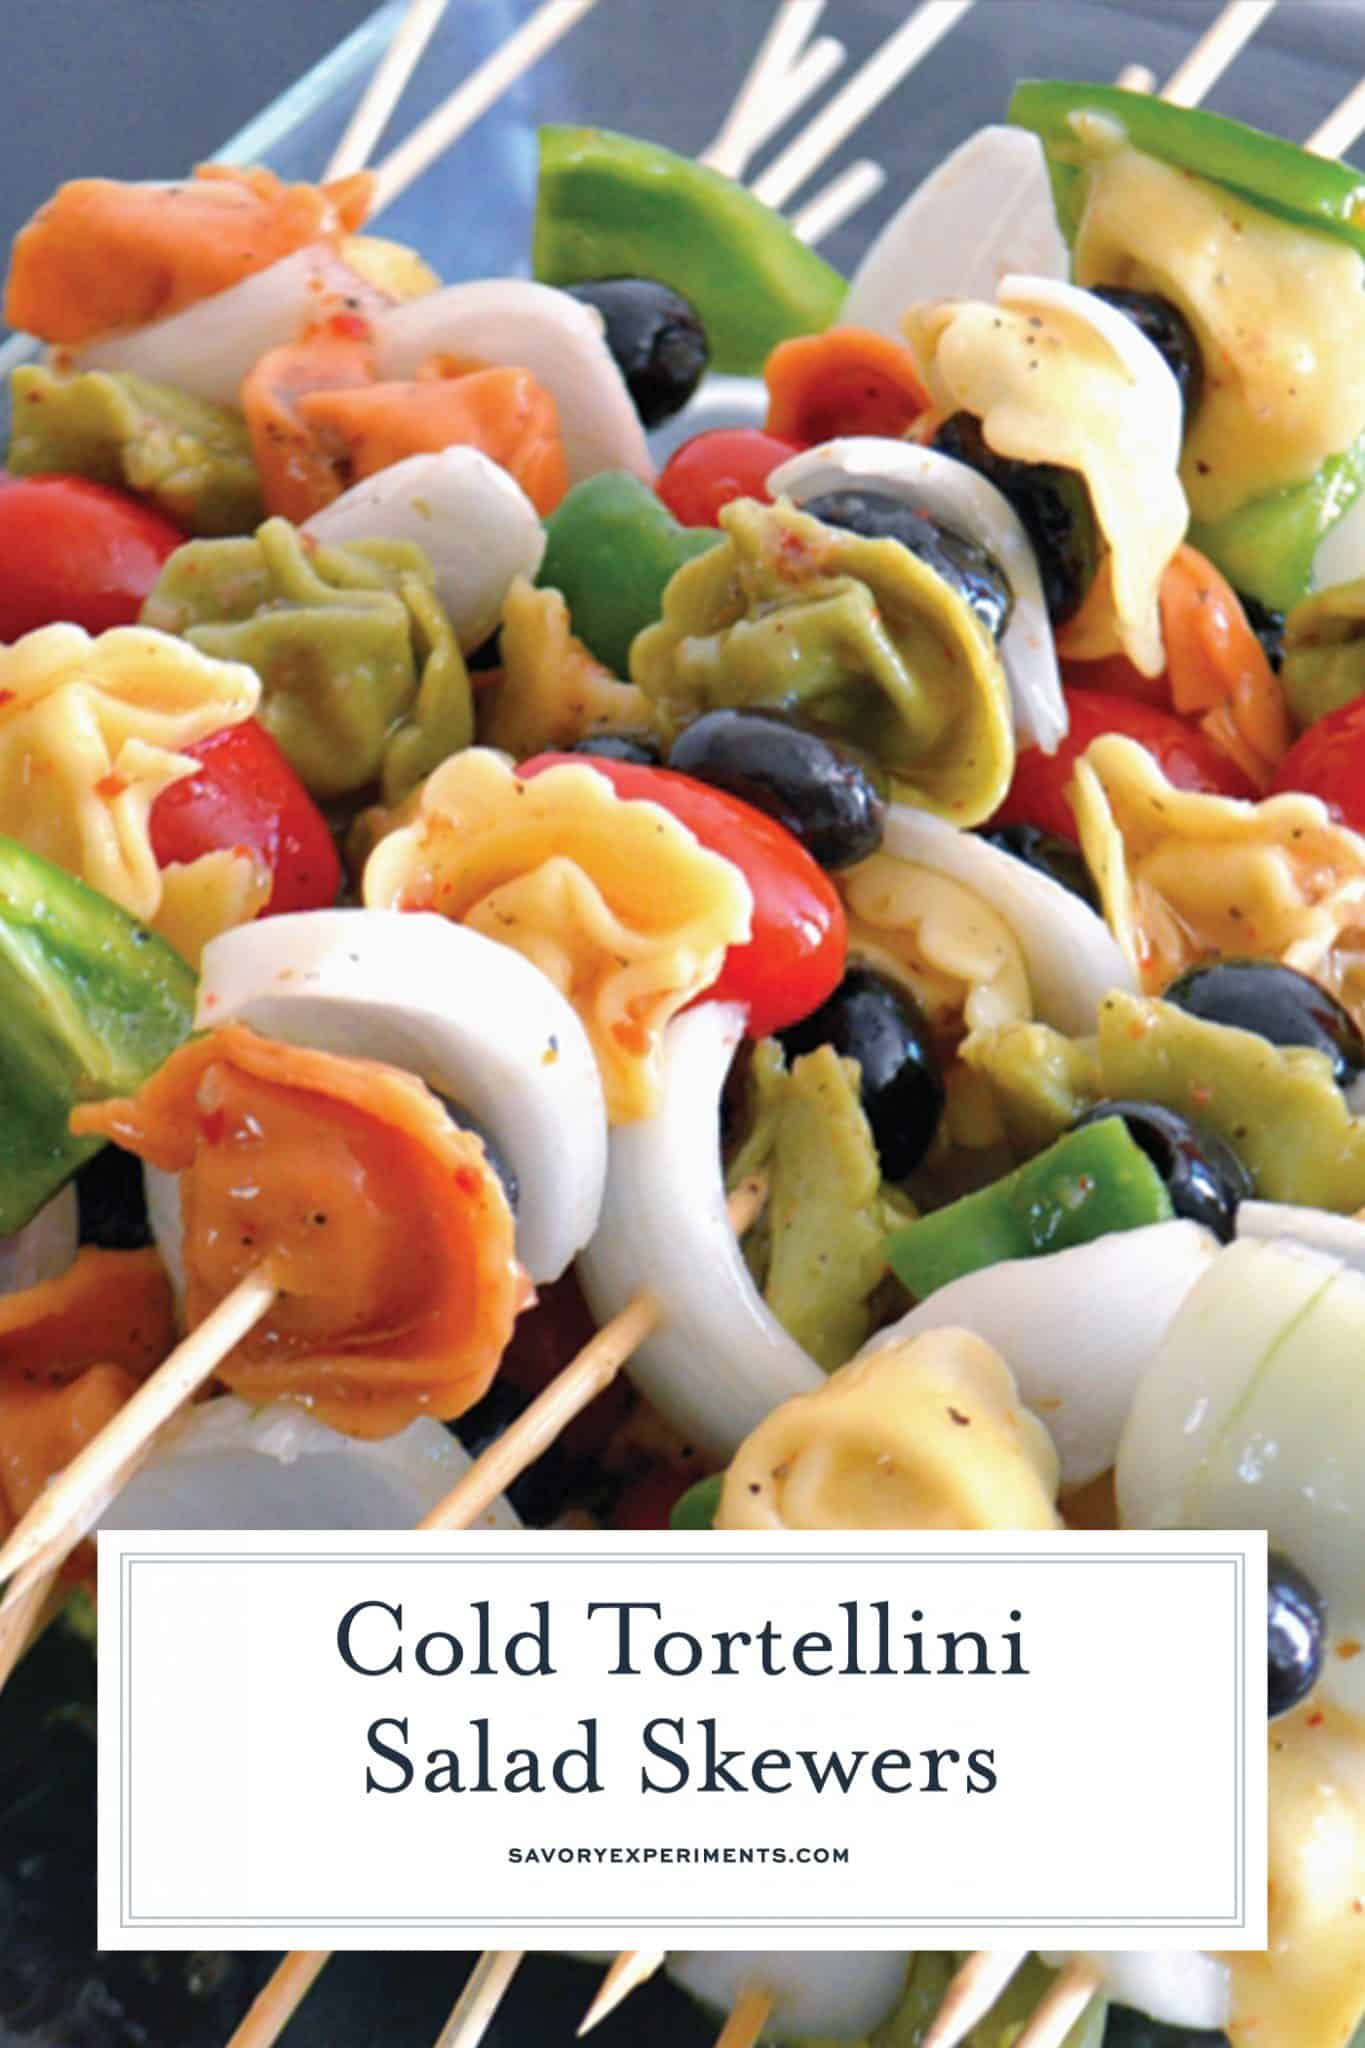 Cold Tortellini Salad Kabobs are a mouth-watering pasta salad served simply, on a stick. They are the perfect snack to serve at a bbq or get together. #coldtortellinisaladkabobs #pastasalad #BBQkabobs #kabobs www.savoryexperiments.com